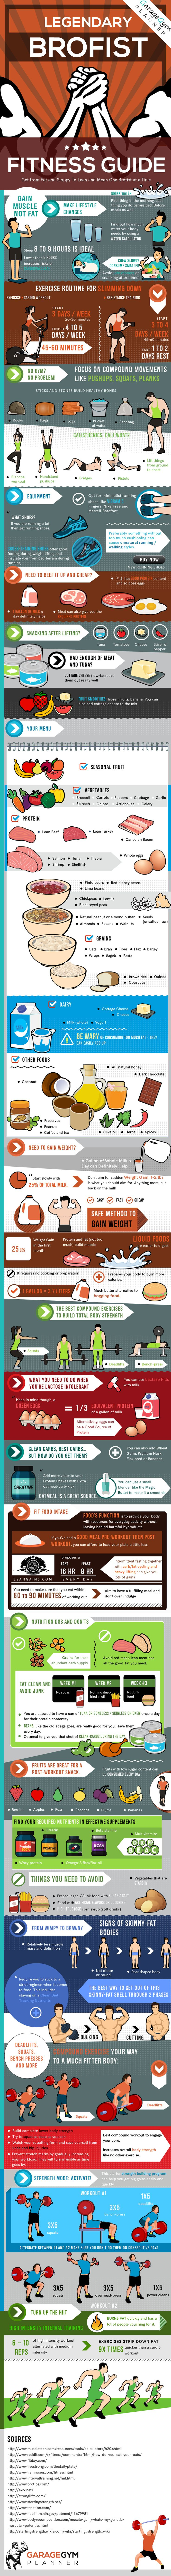 The Legendary Guide to Fitness Workouts #Infographic #Fitness